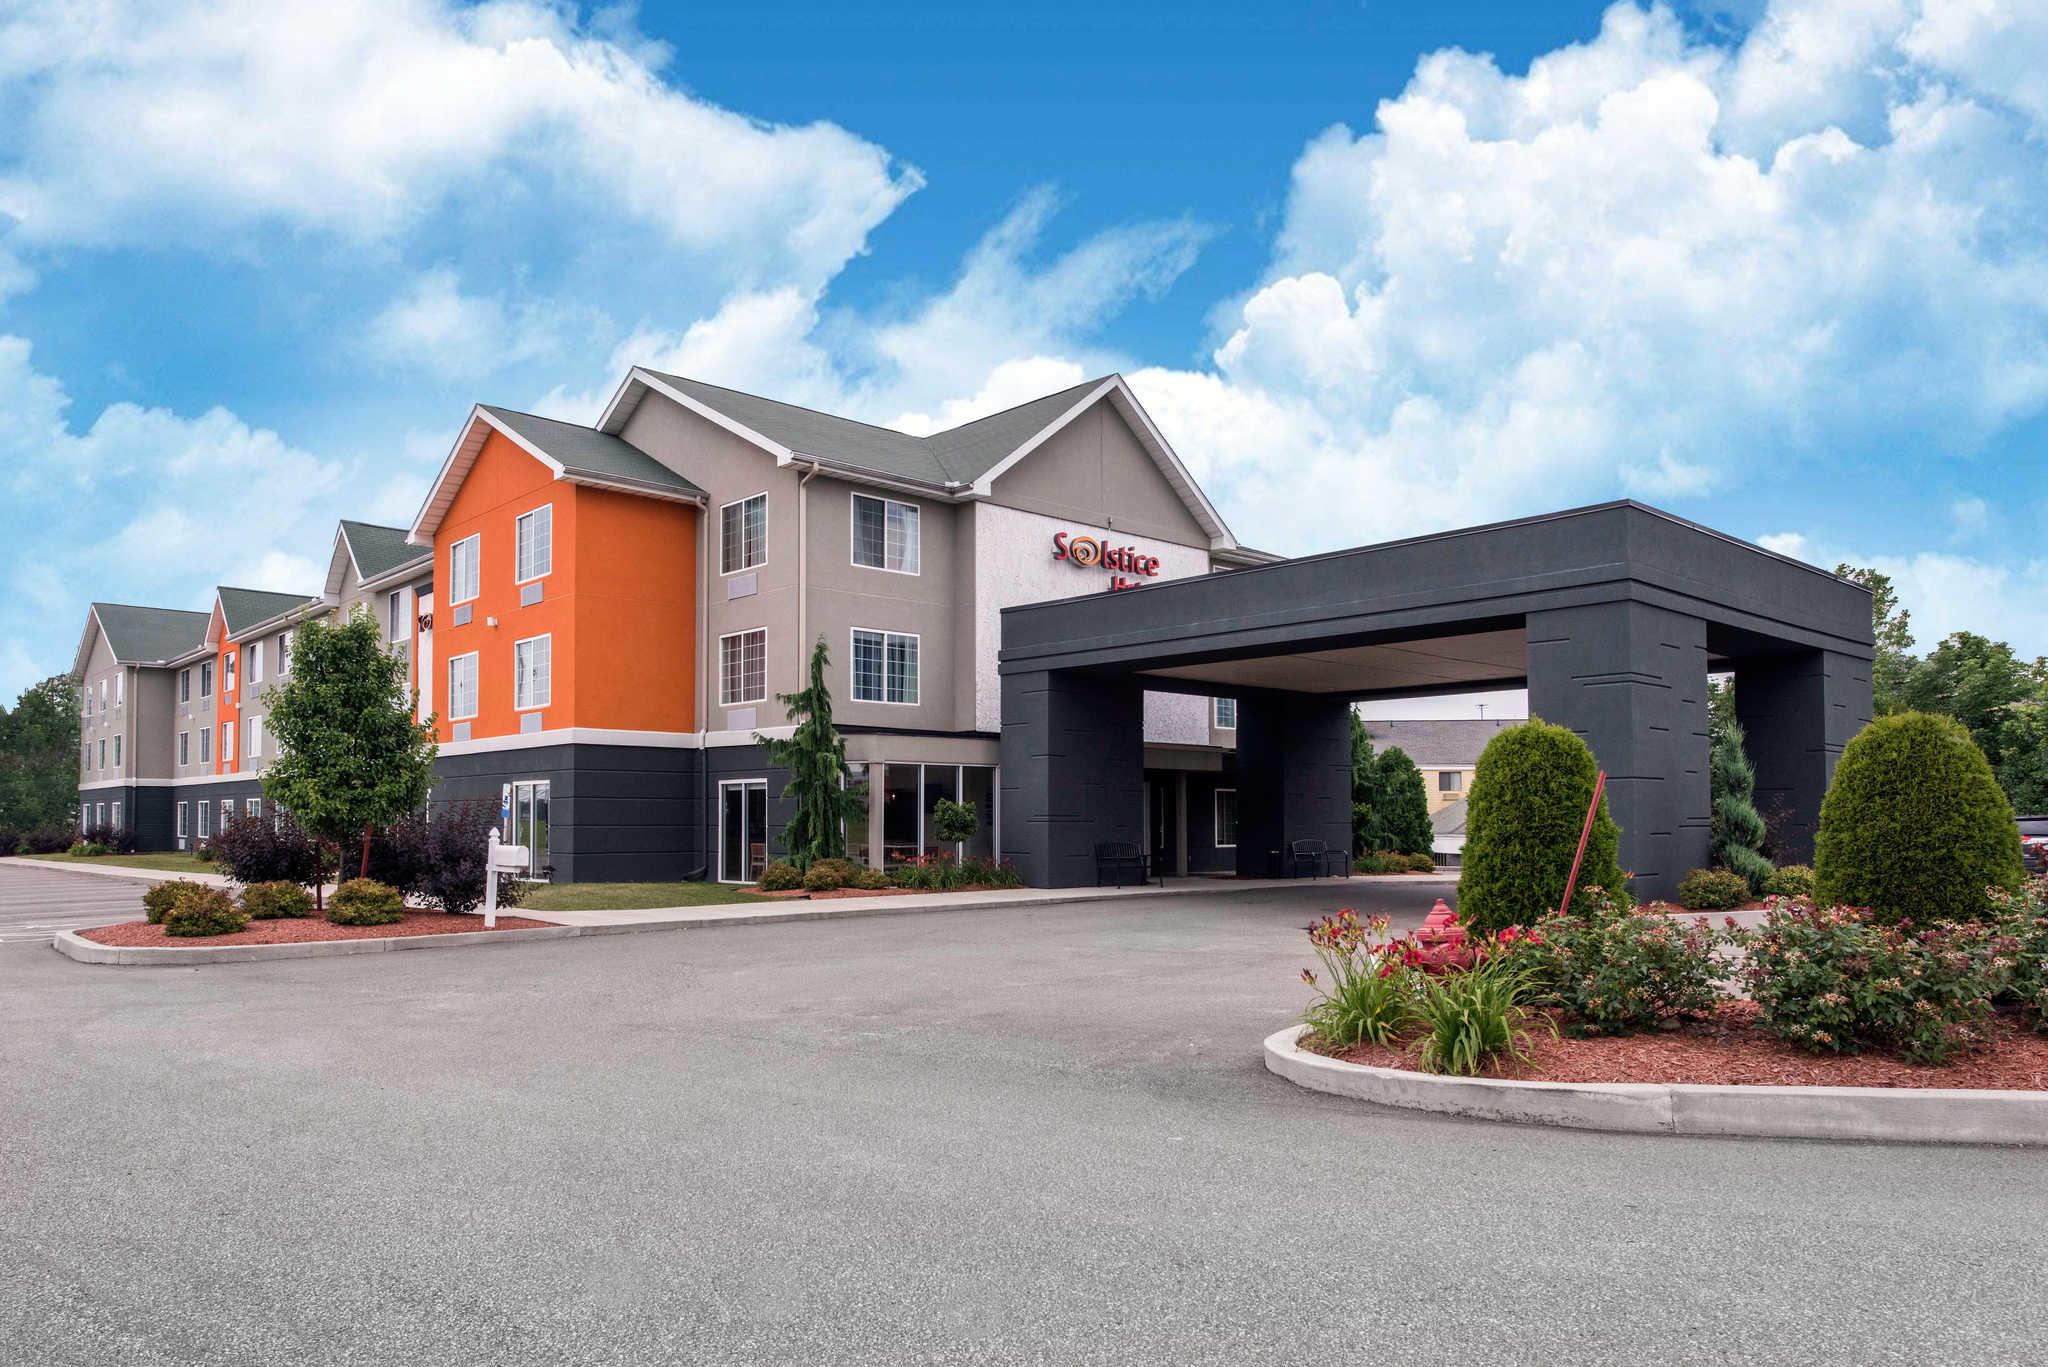 Solstice Hotel, an Ascend Hotel Collection Member image 1